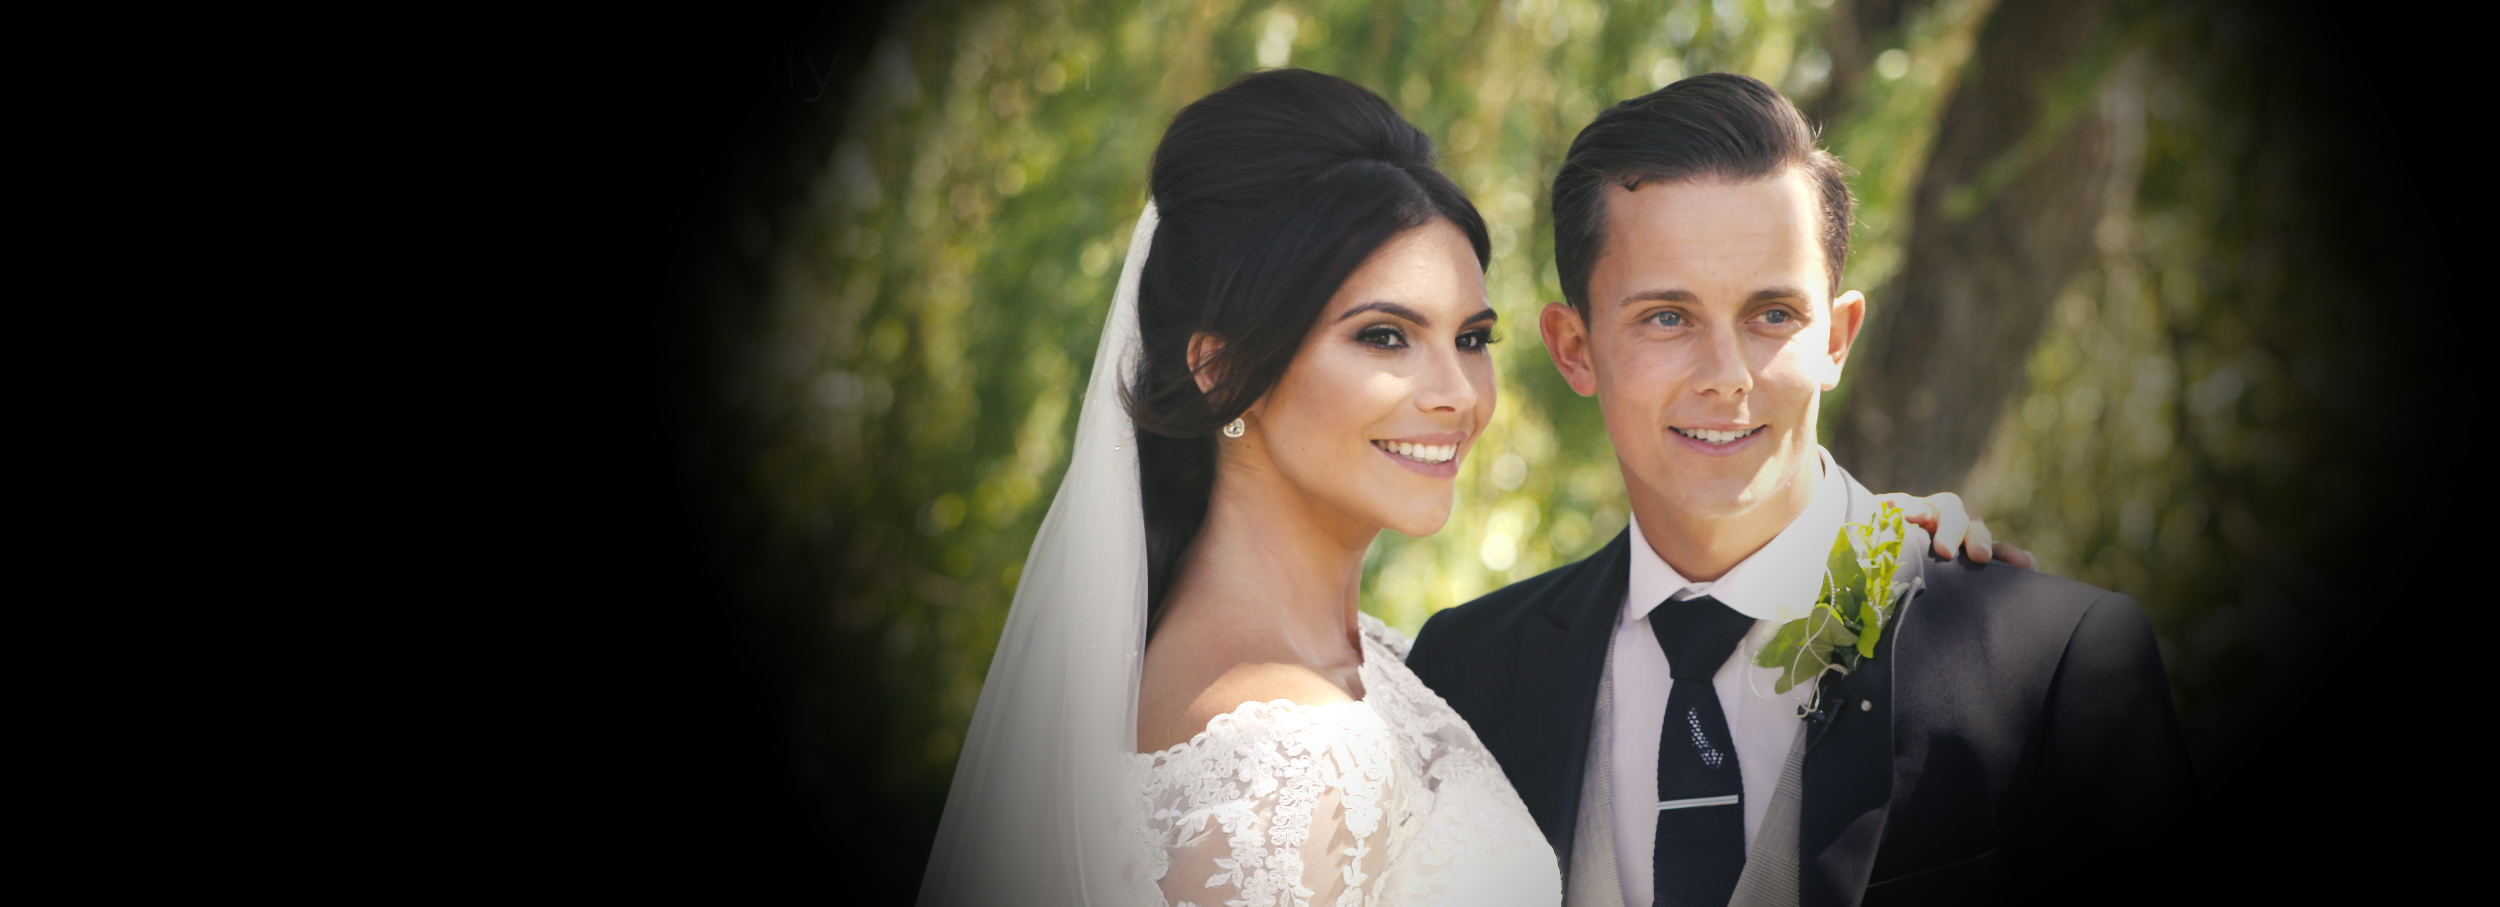 Wedding Videography in Hertfordshire